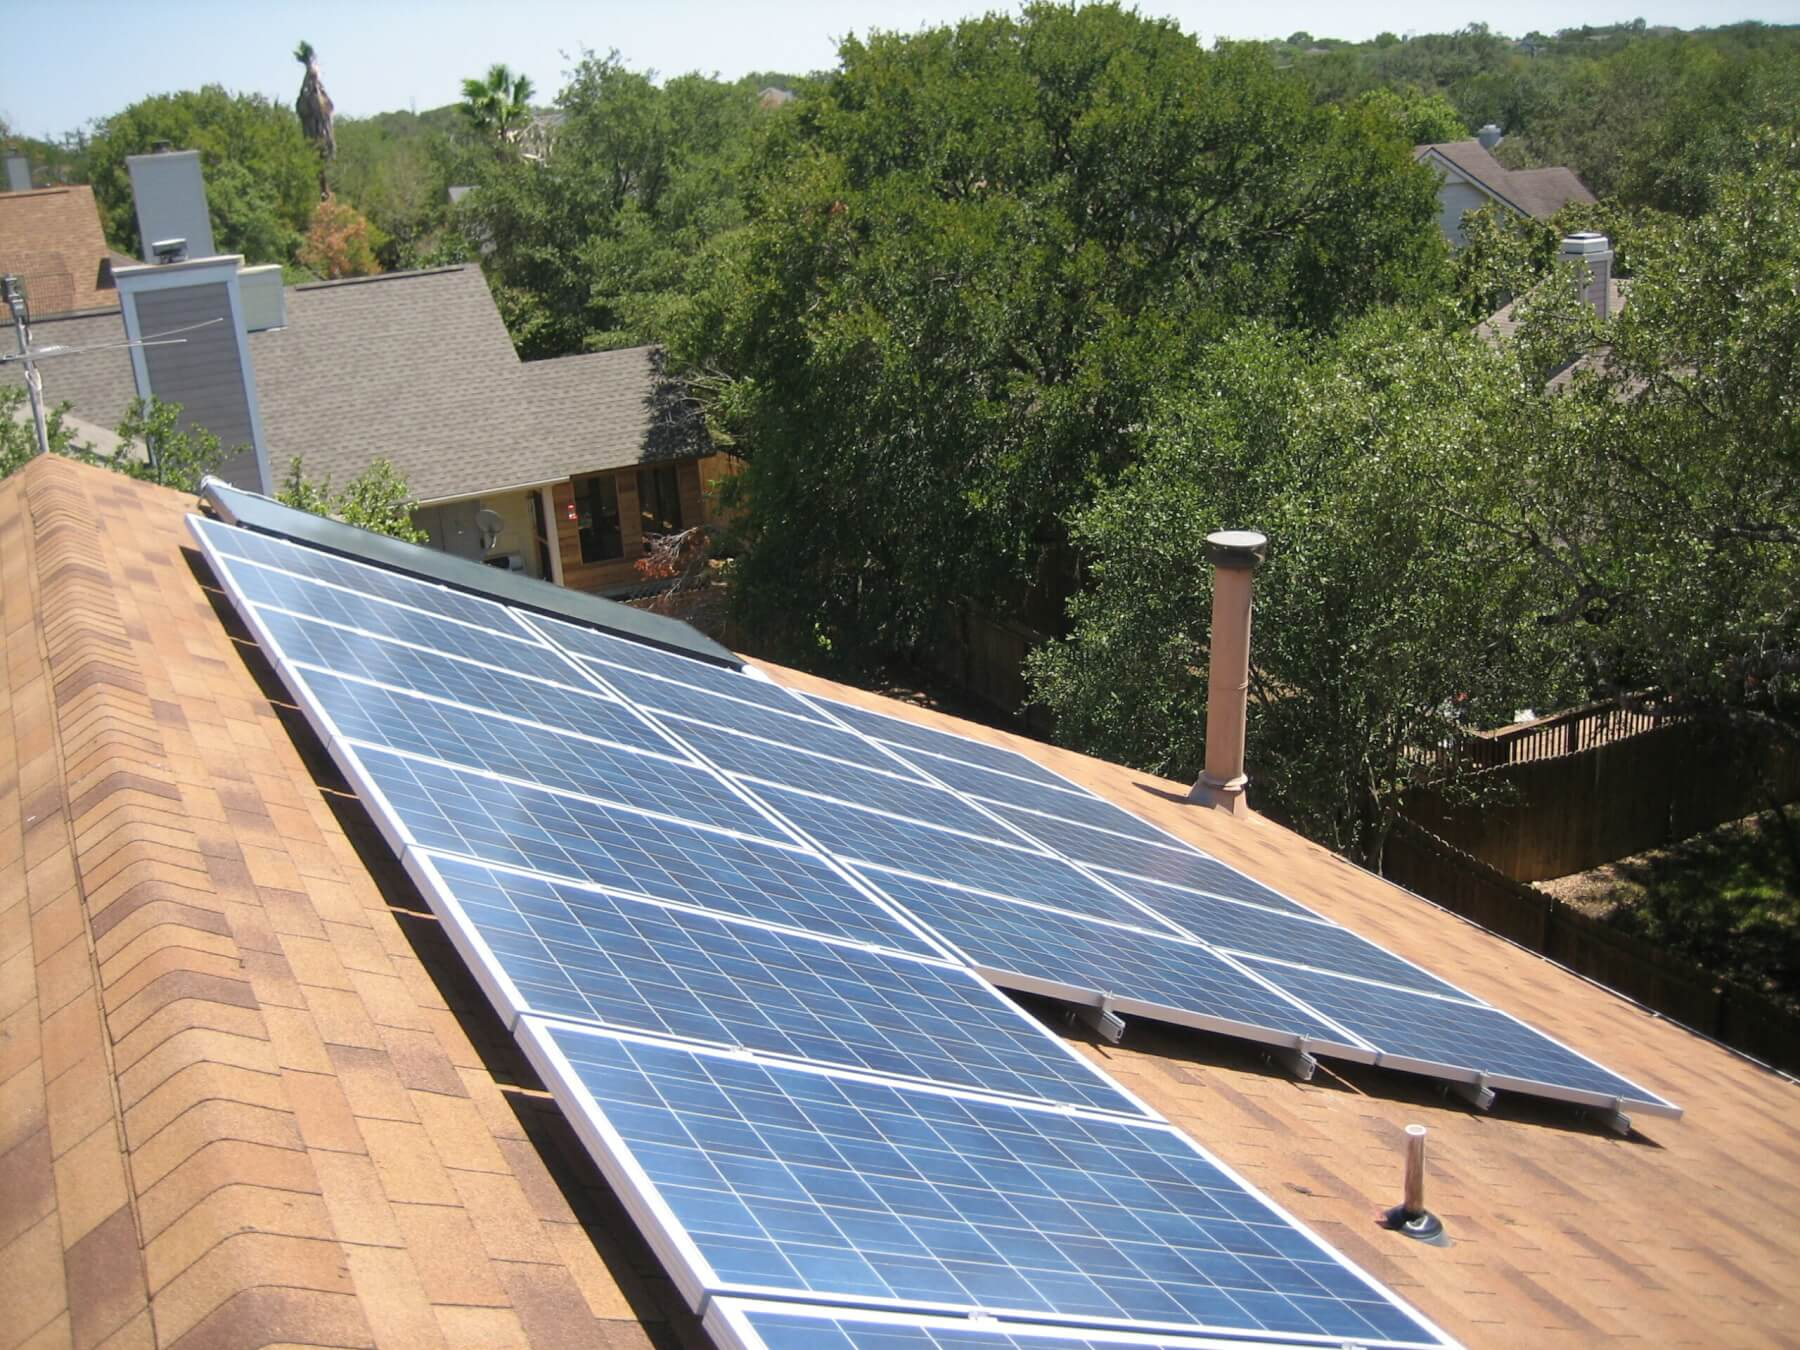 Roof with solar panels installed